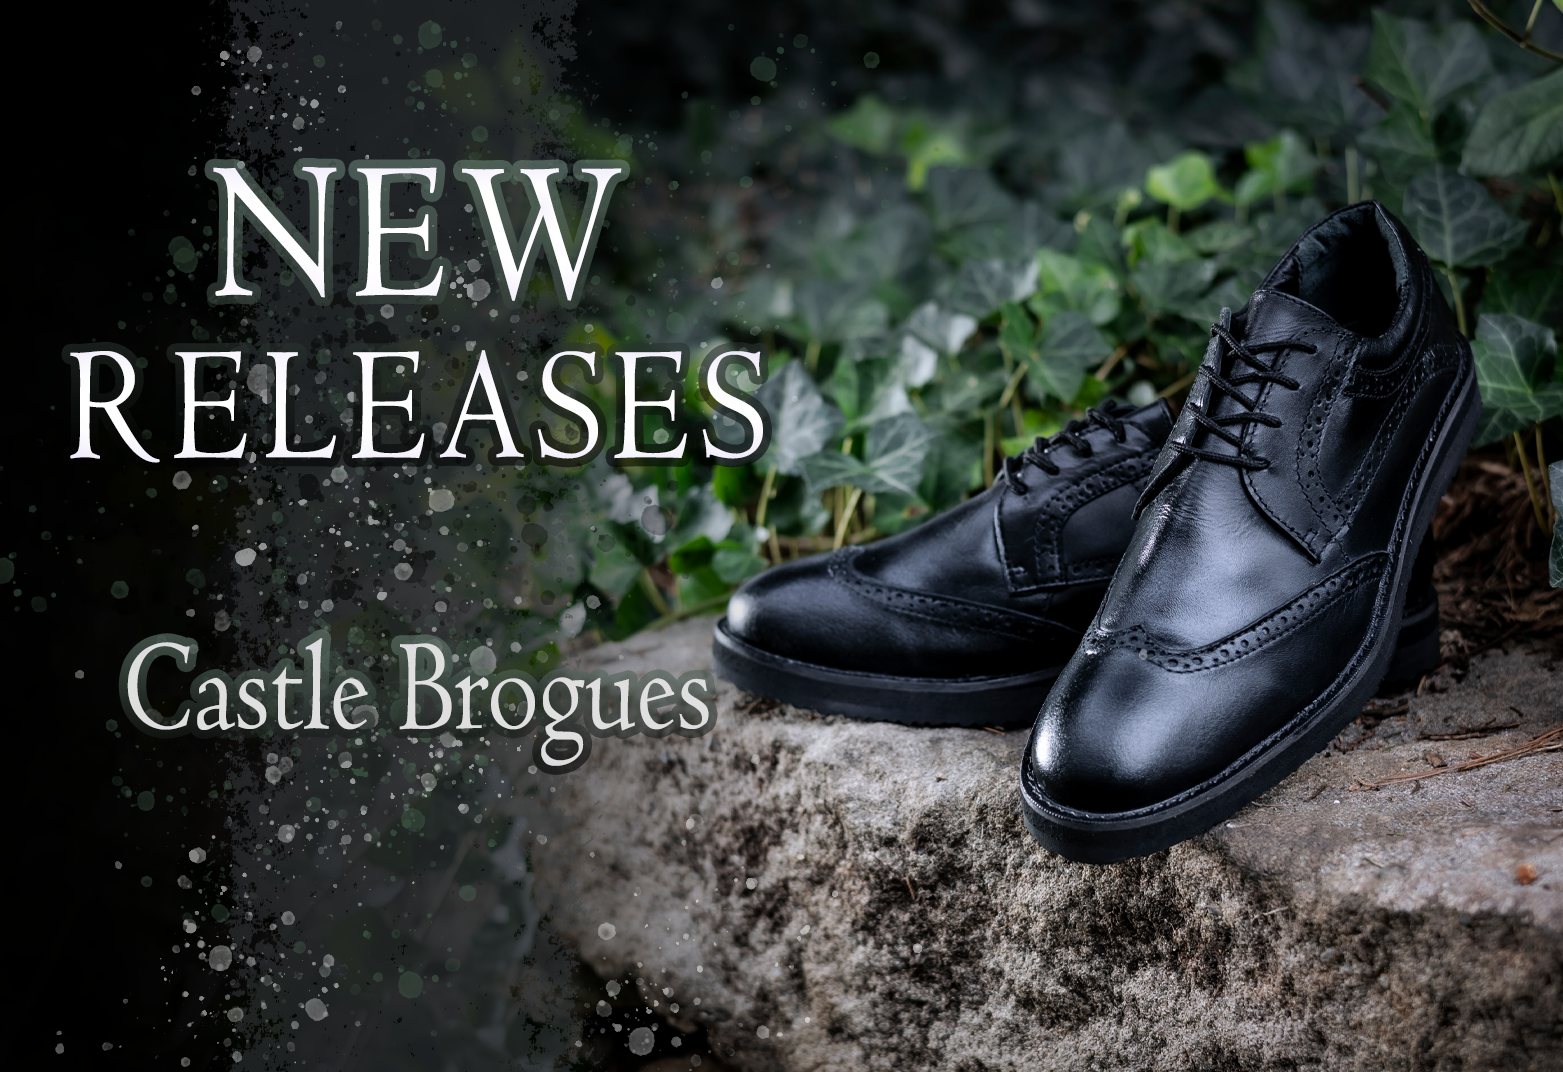 Verillas New Releases - Castle Brogues Leather Formal Shoes